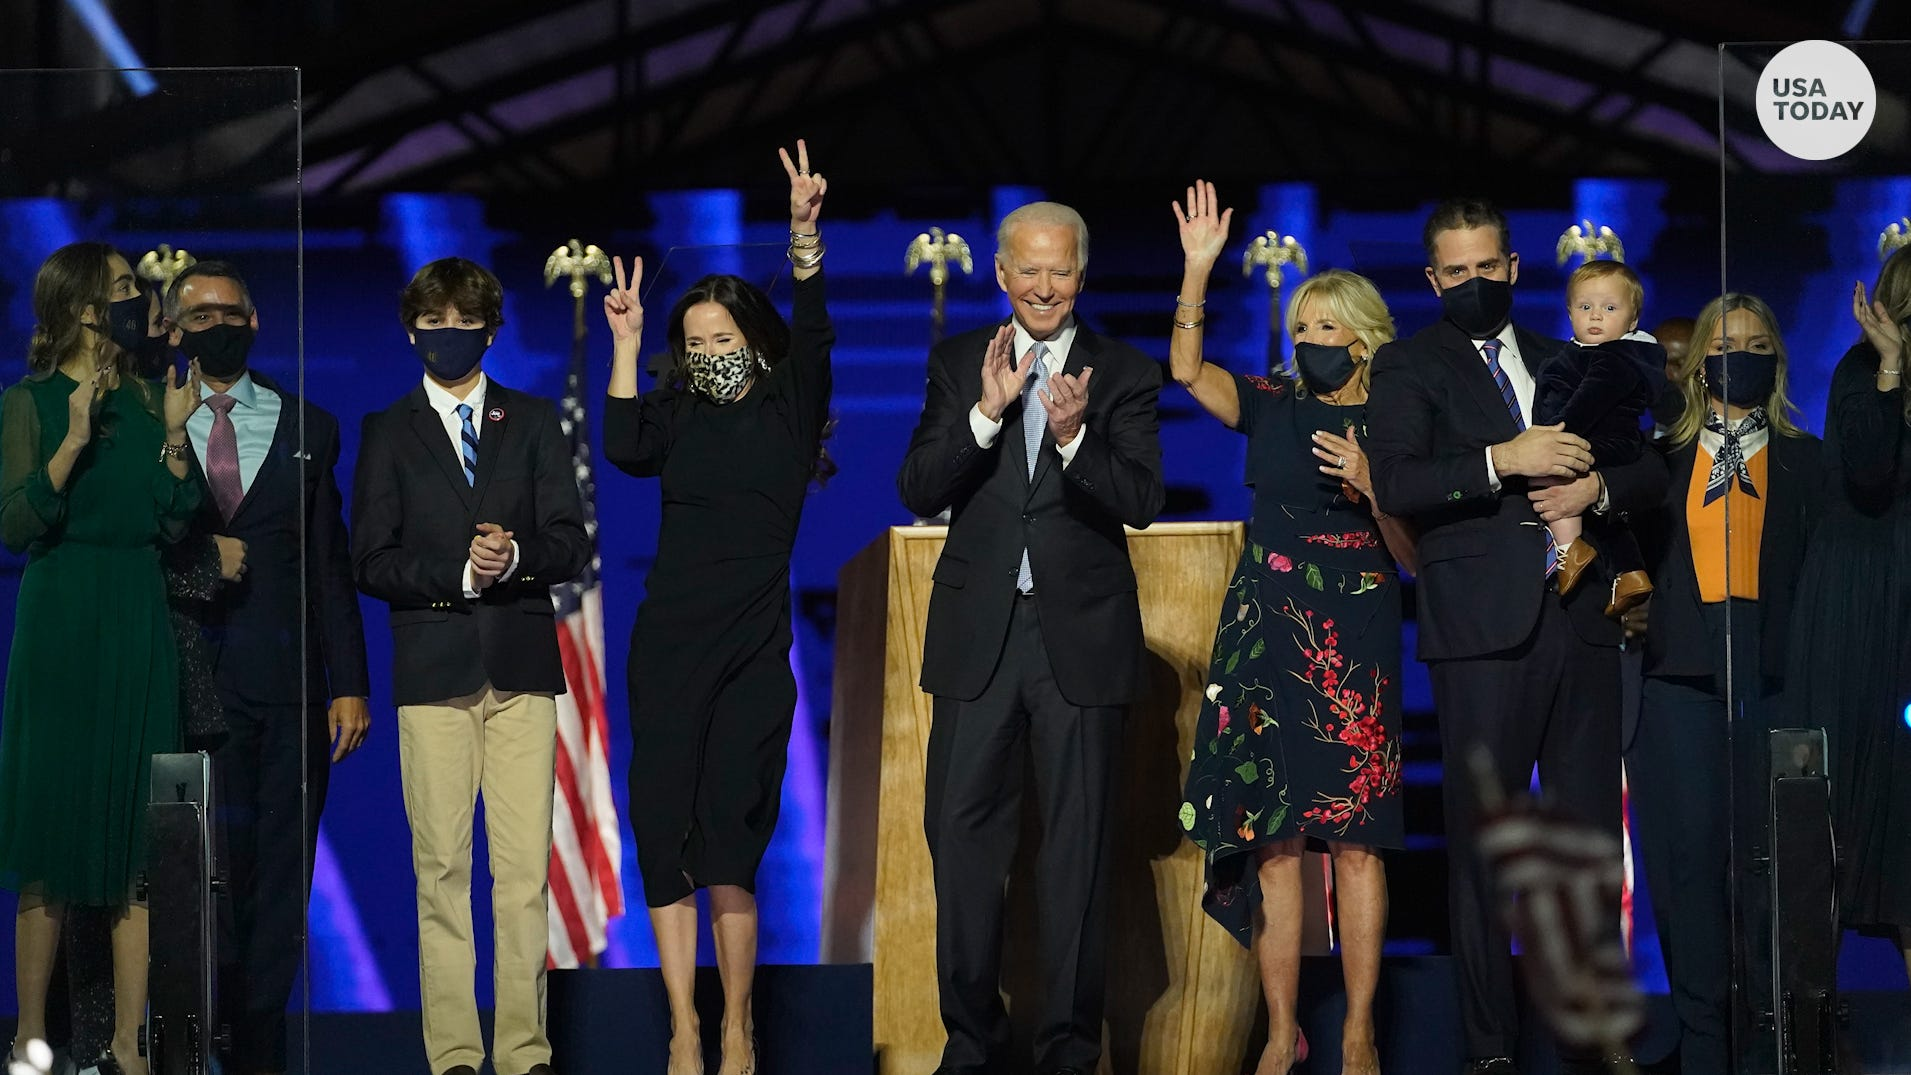 Joe Biden's family: An in depth look at the next first family